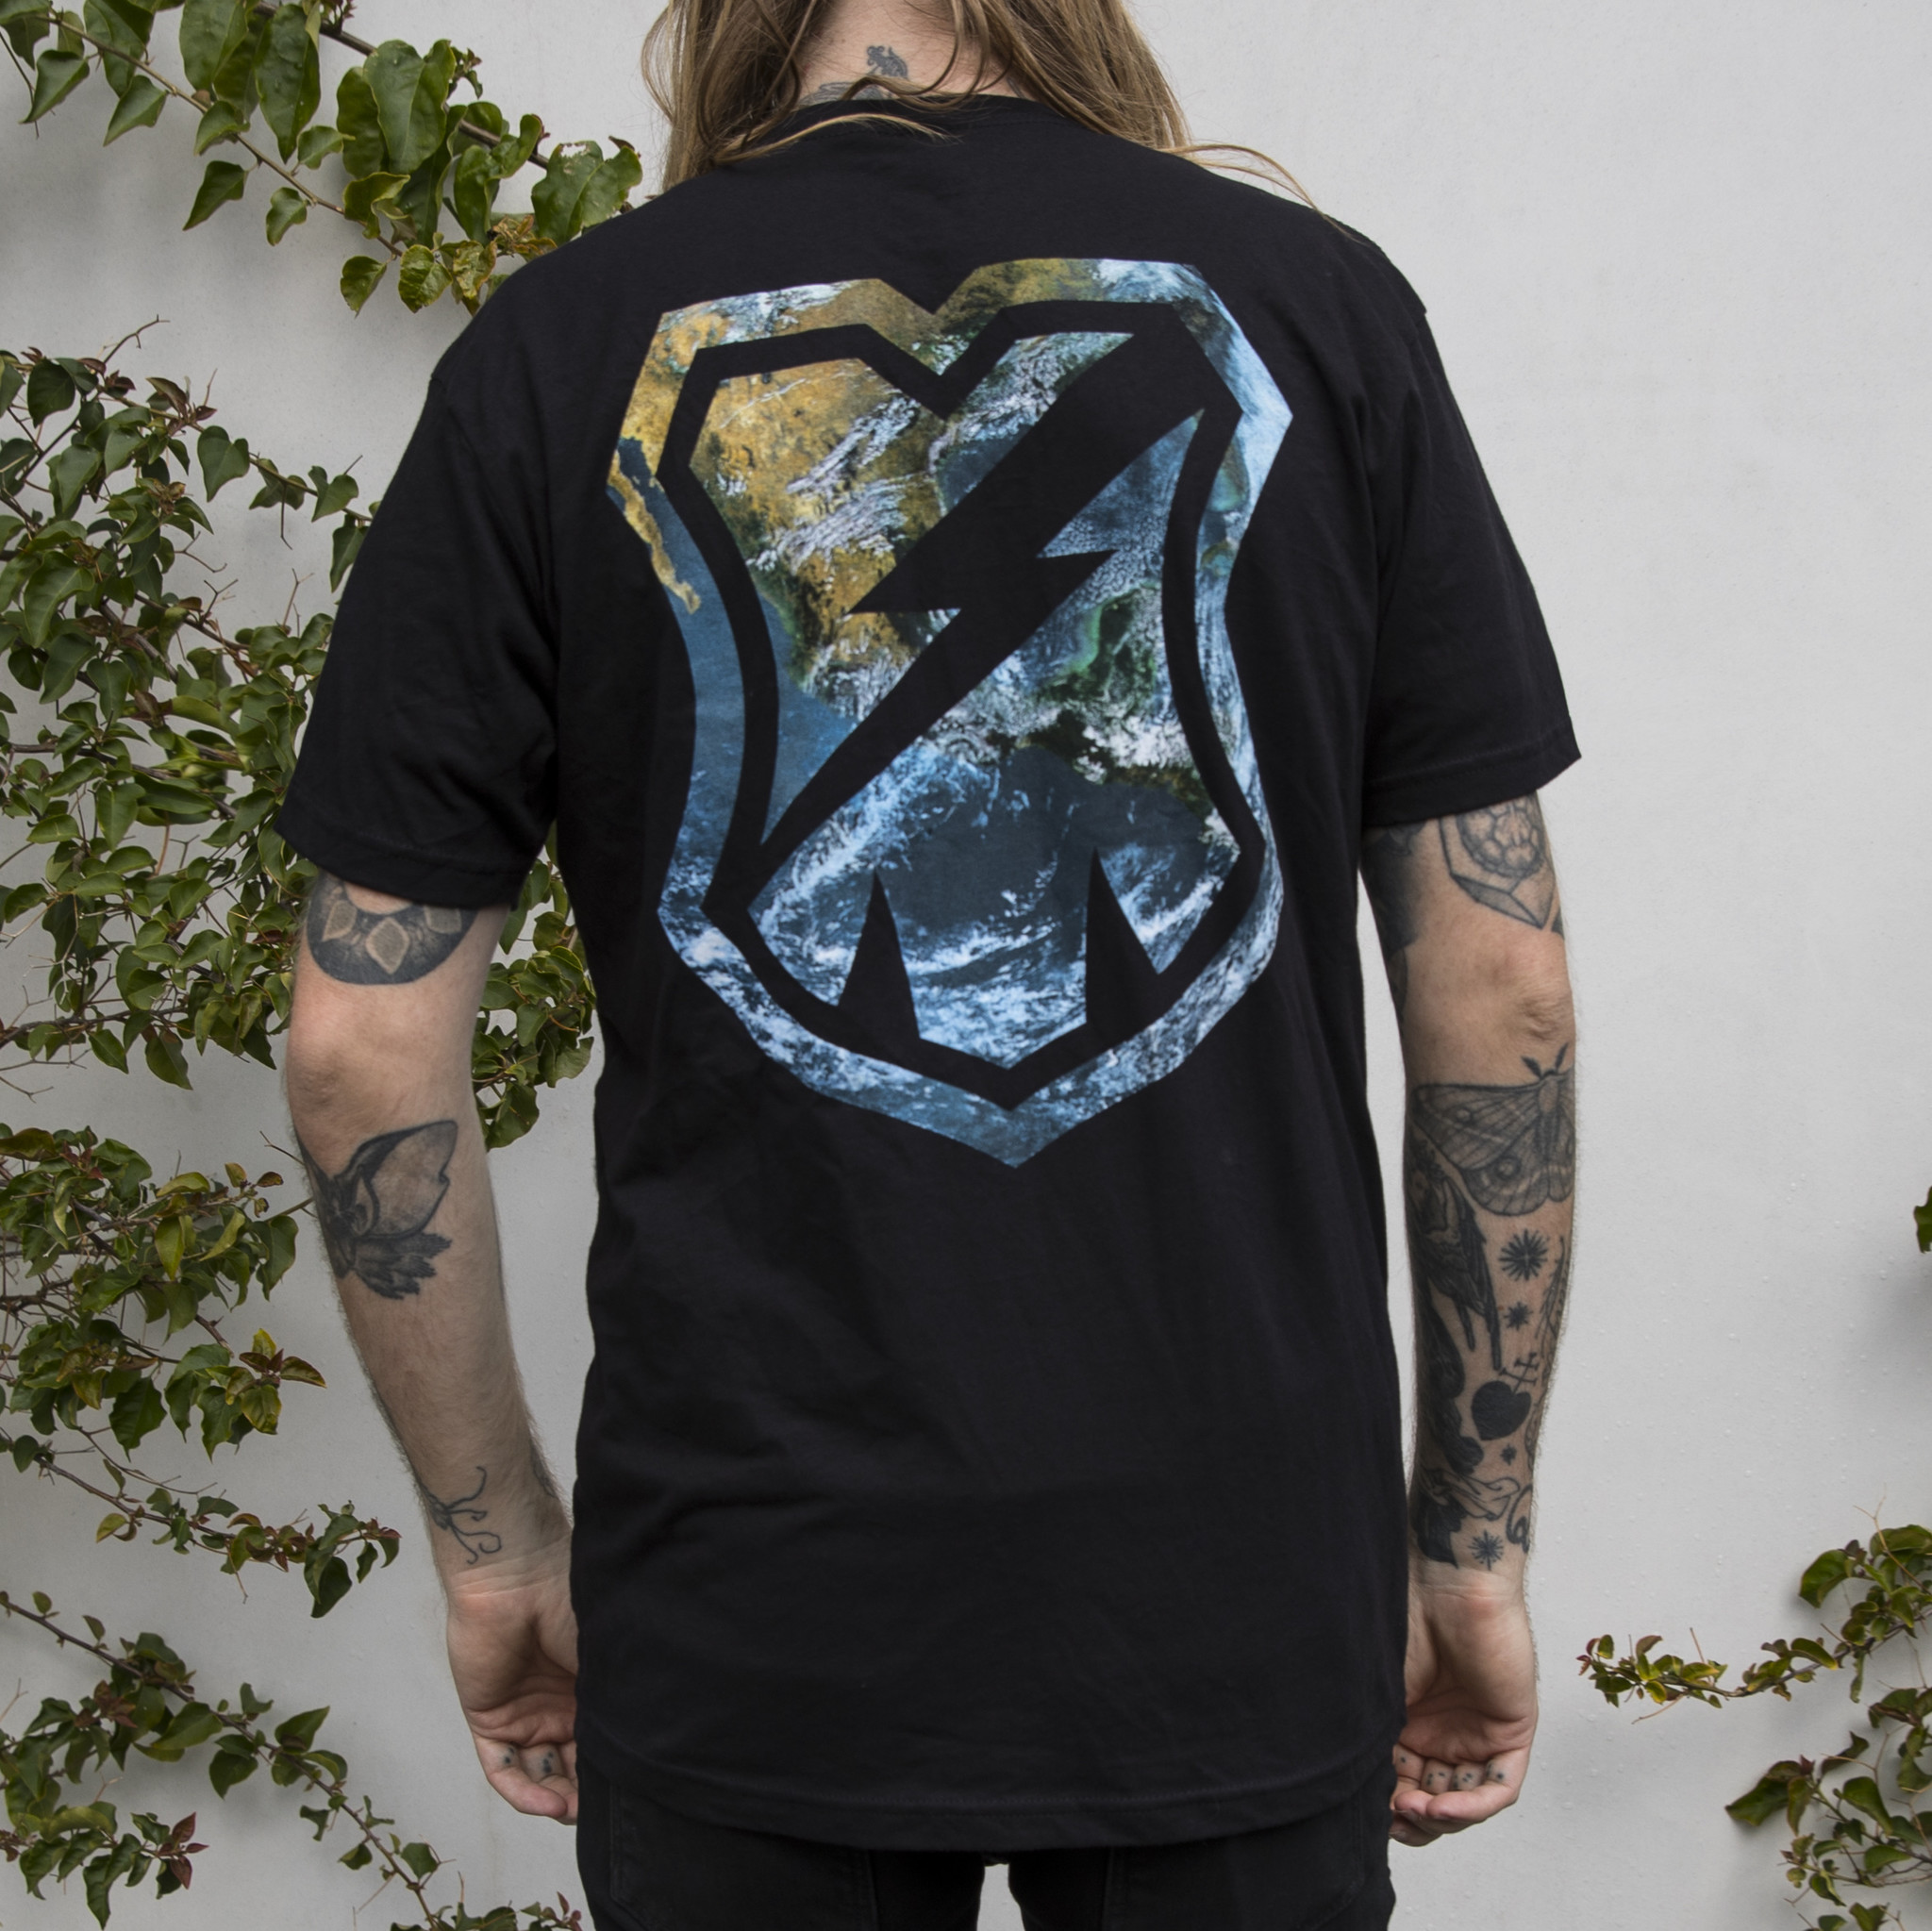 MASH Earth Shirt Black